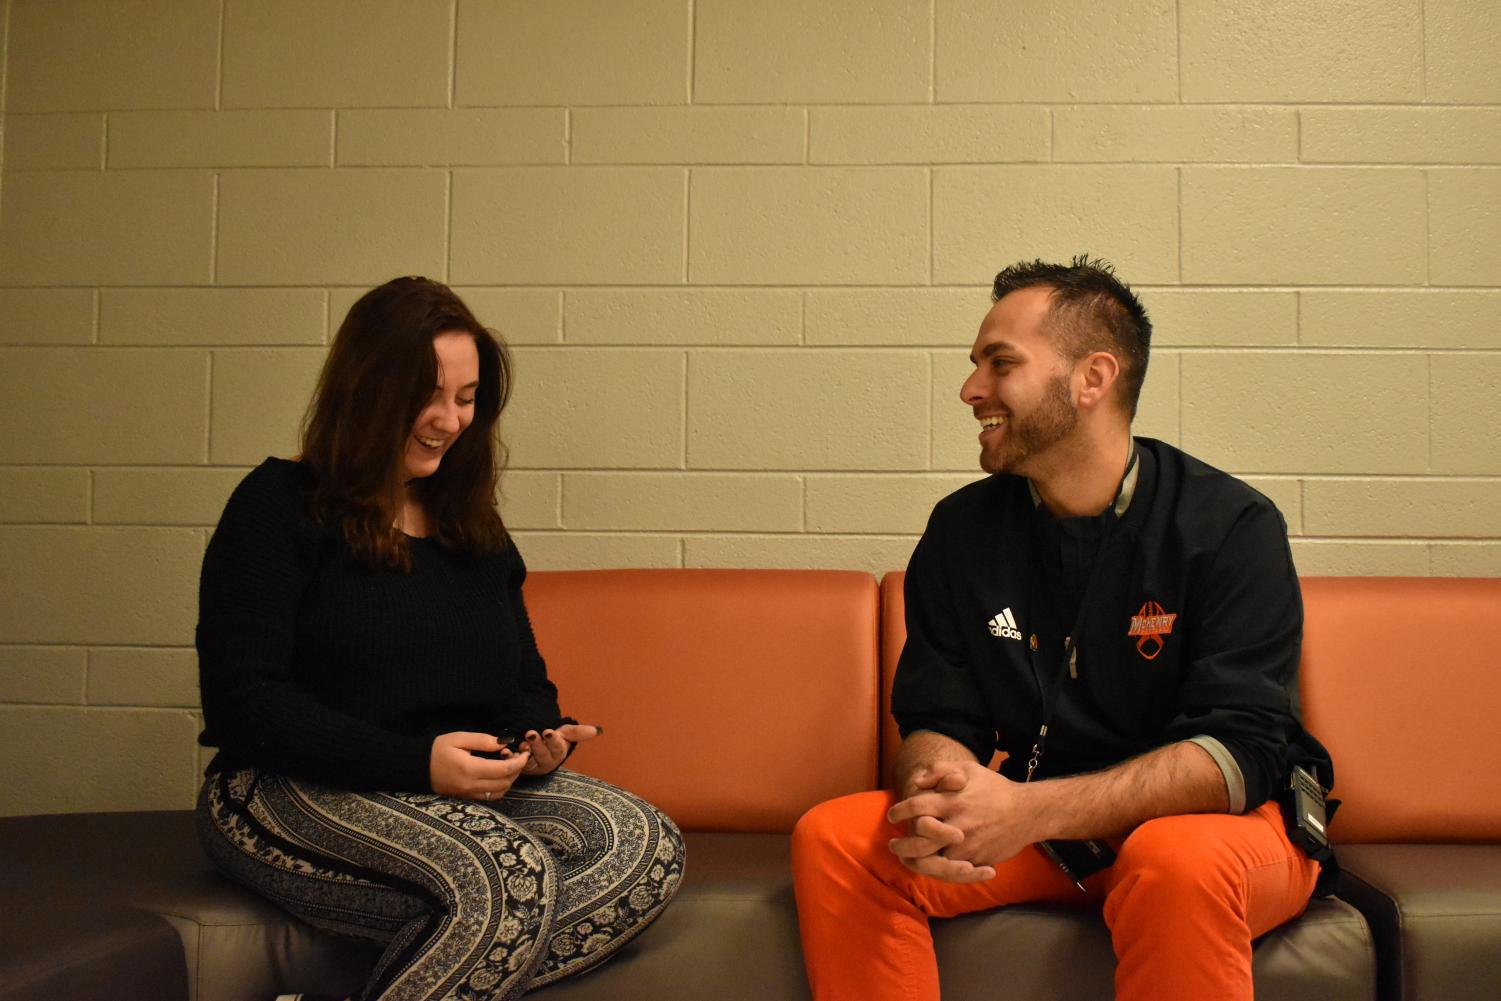 Justin Stroh smiles as he converses with senior Stacy Correra outside of the classroom. One of Stroh's main goals as dean is to establish a more positive relationship with students across both campuses.